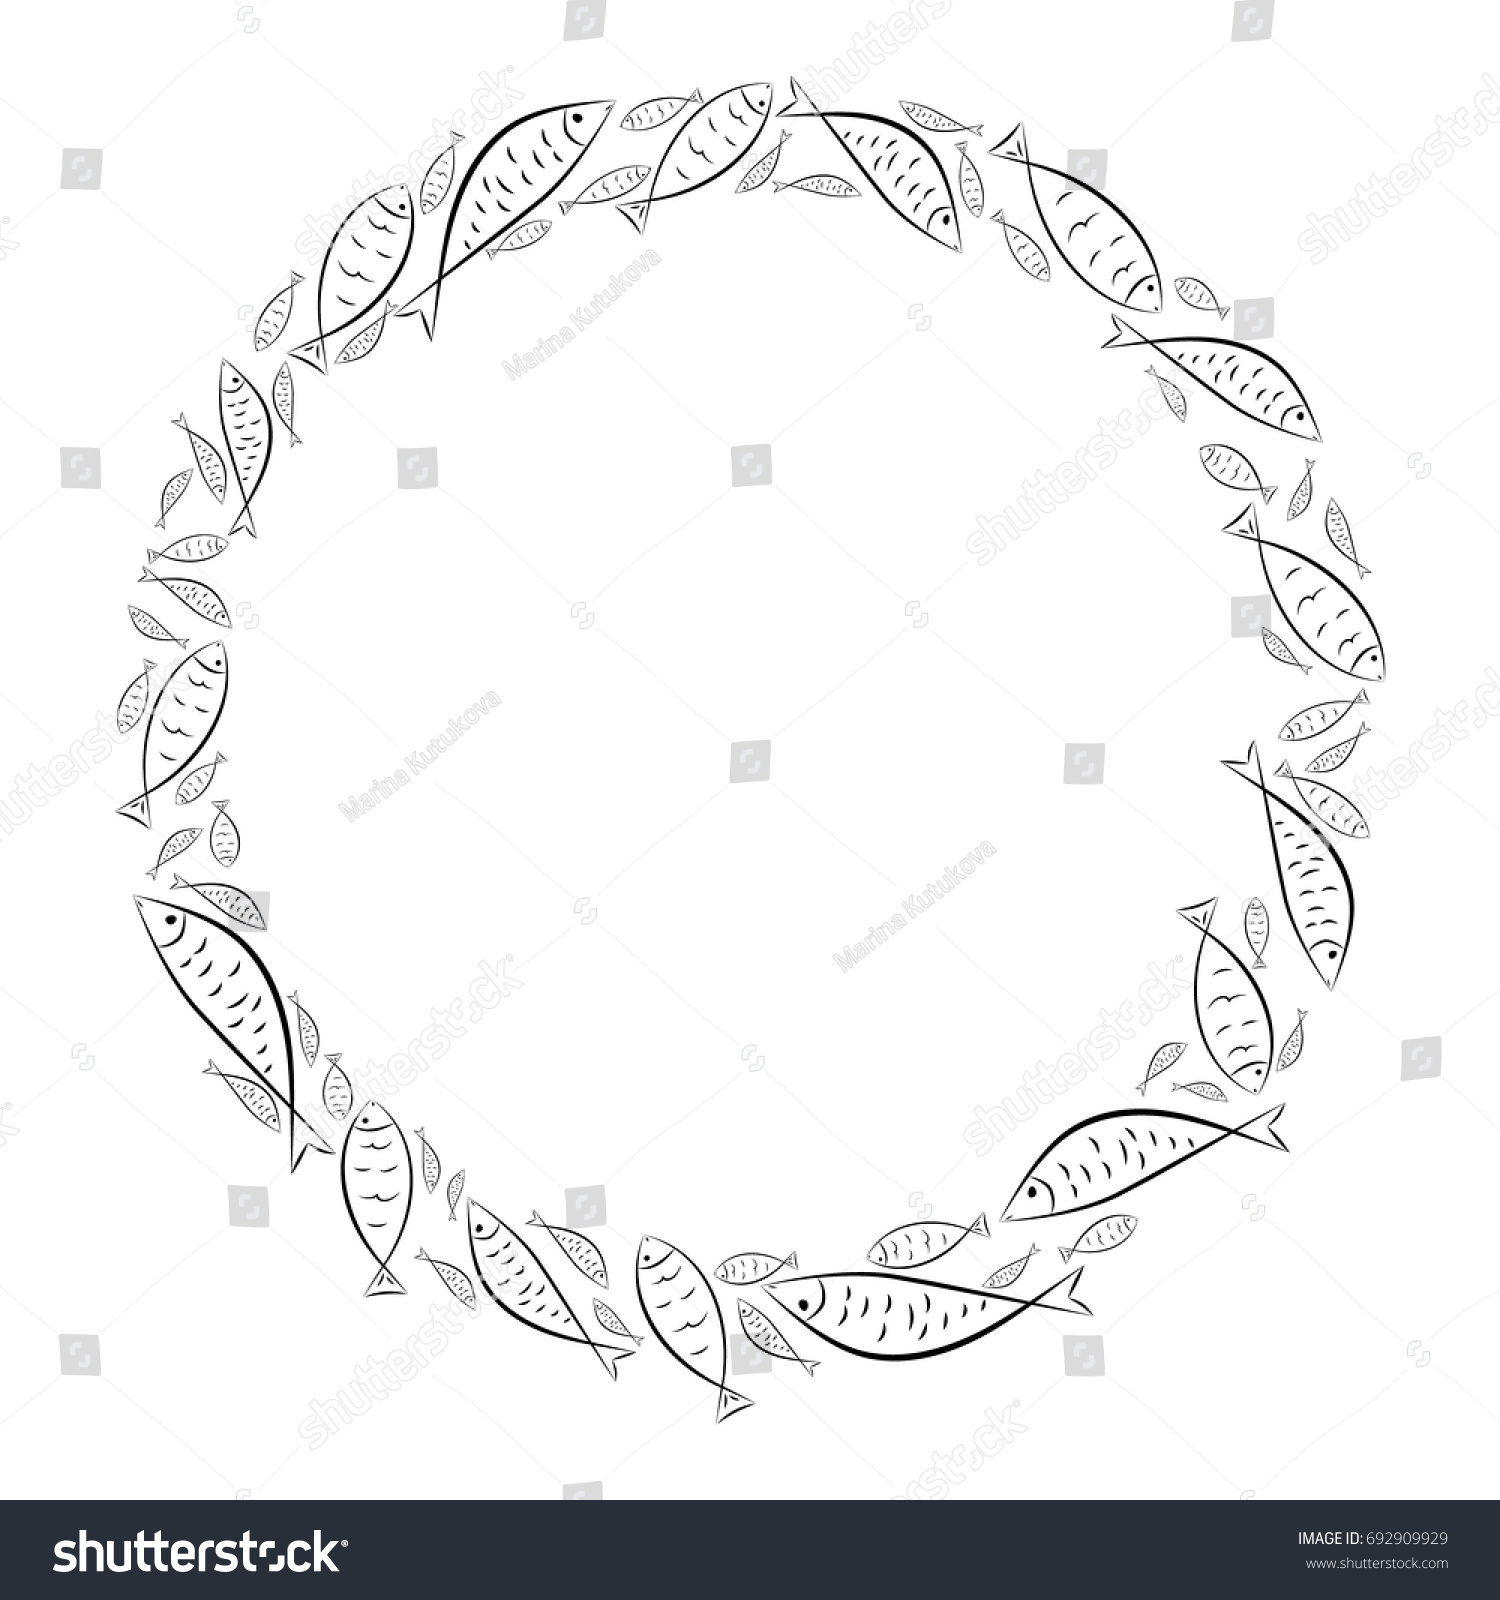 Circle Frame Ichthys Symbol Fish Ancient Stock Vector 692909929